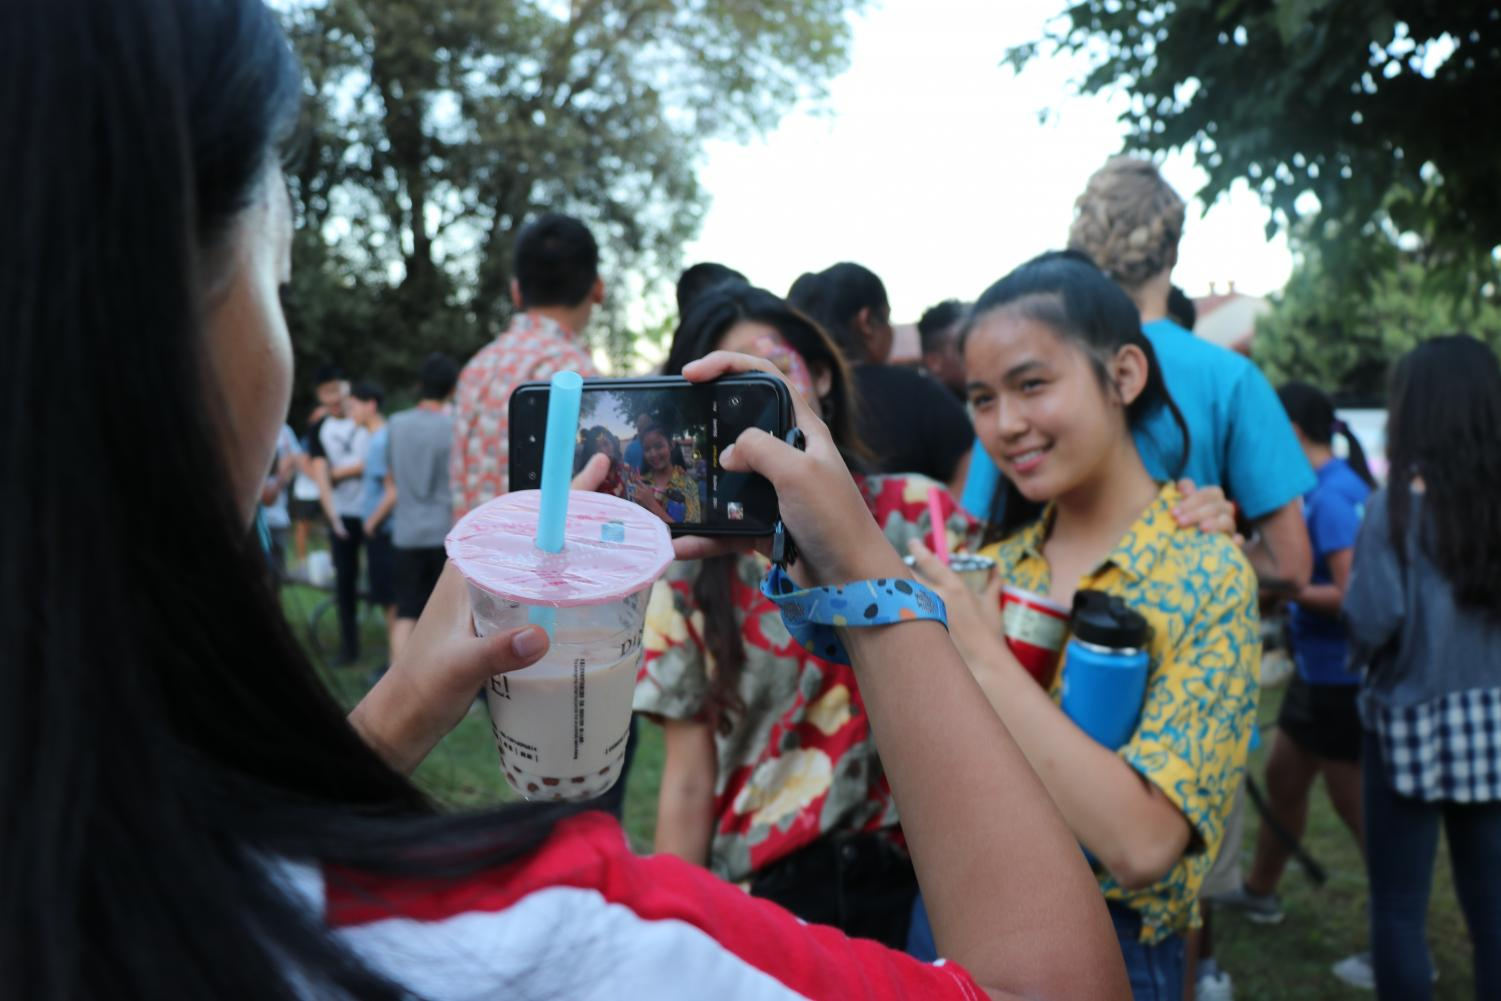 VWS students smile with their intricate face paint designs on display for their friend, who has an iPhone snapping a photo in one hand and a cup of Ding Tea boba in the other.